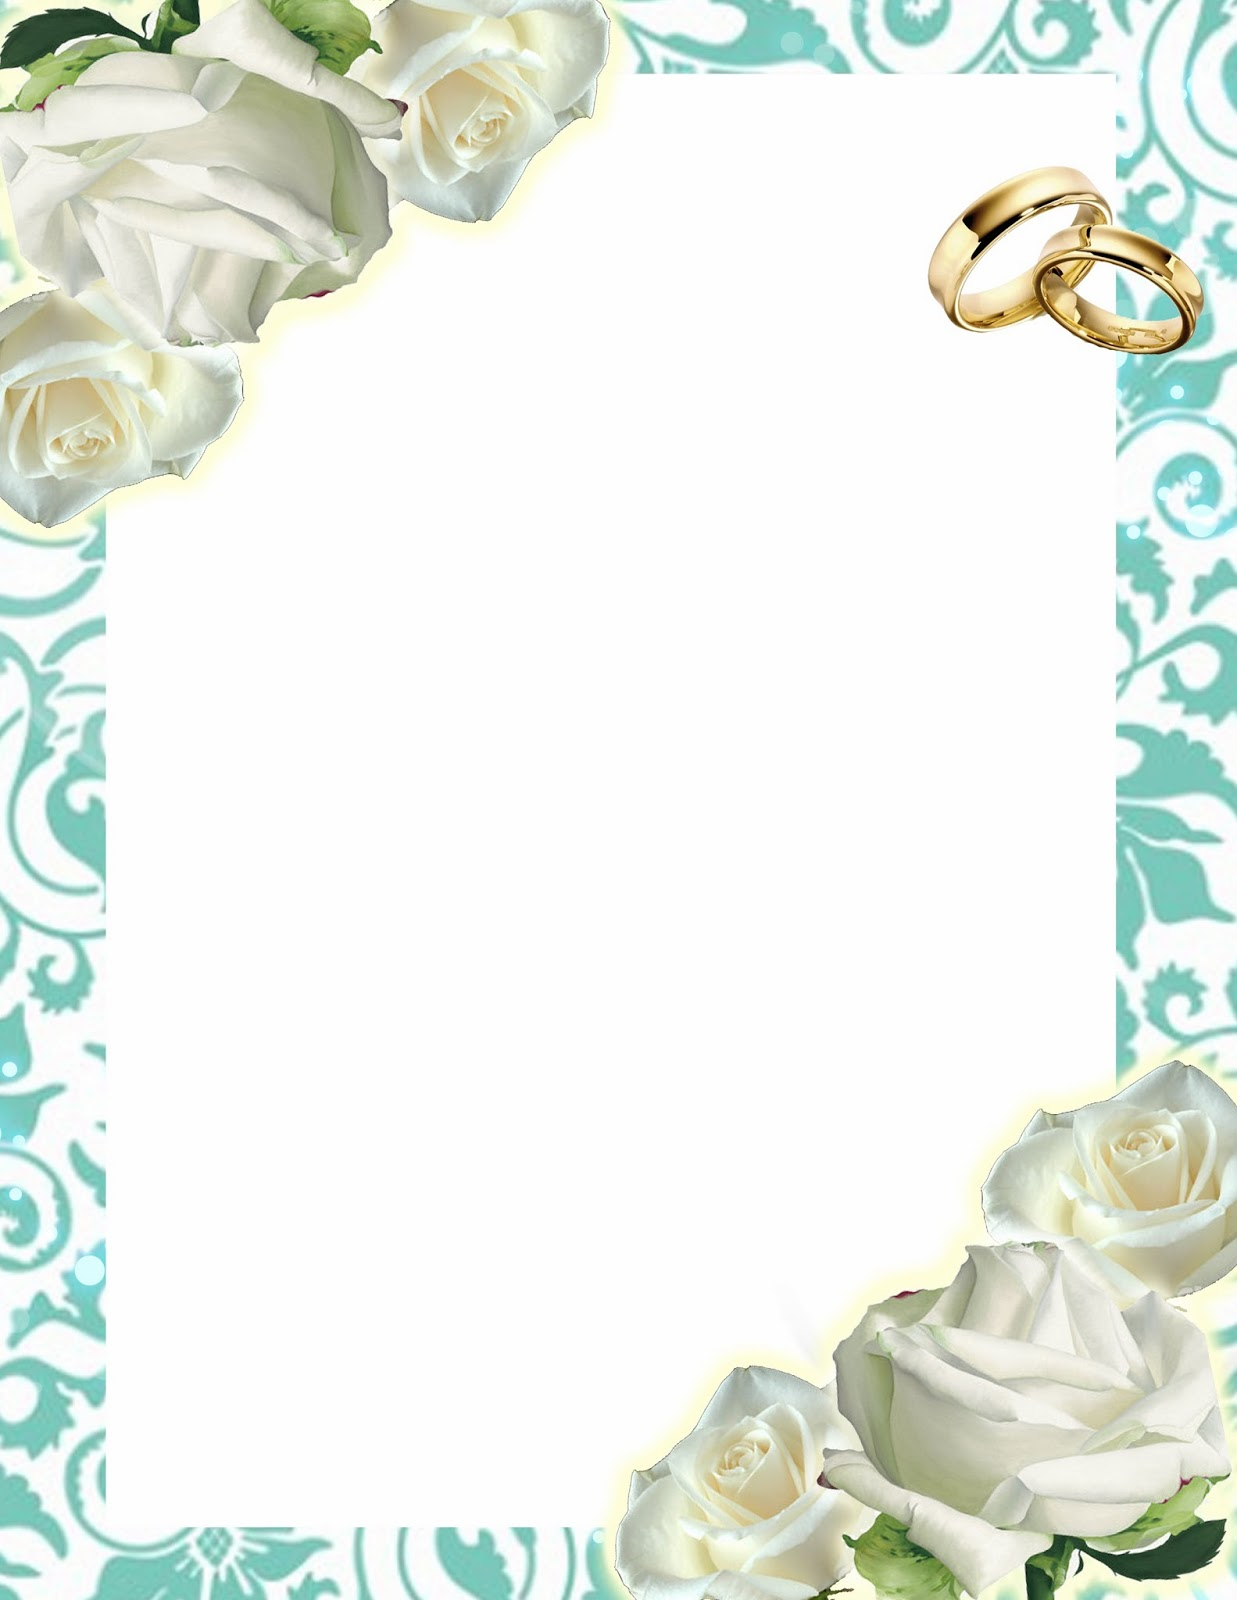 Template Free: Turquoise Invitation for Weddings with Roses and Rings